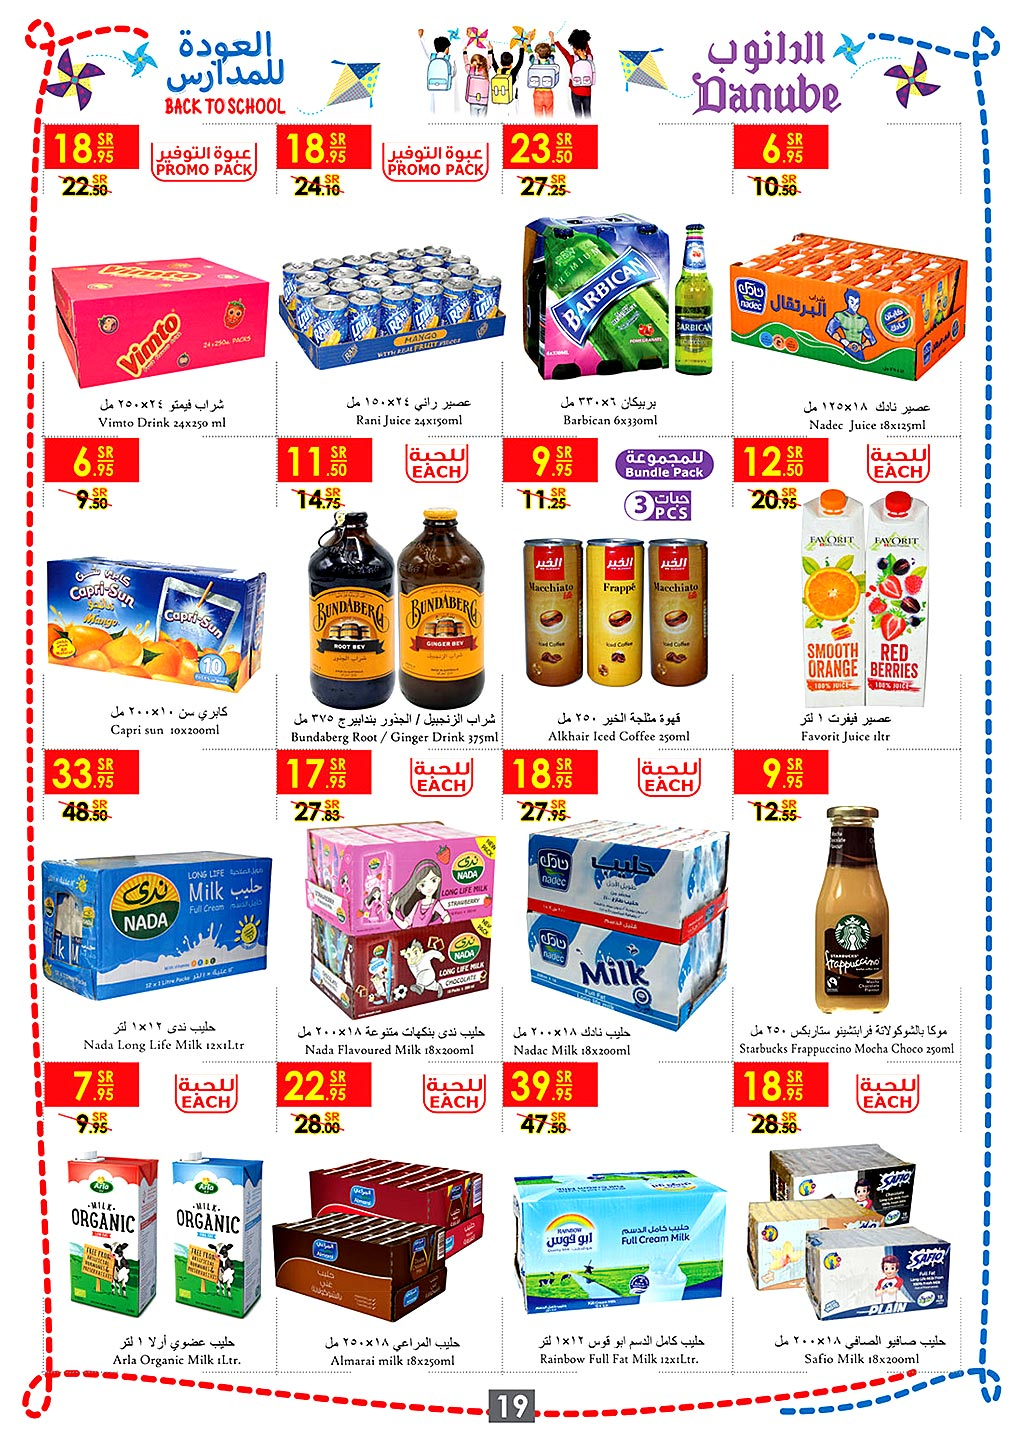 danube offers from 21aug to 28aug 2019 page number 19 عروض الدانوب من 21 أغسطس حتى 28 أغسطس 2019 صفحة رقم 19